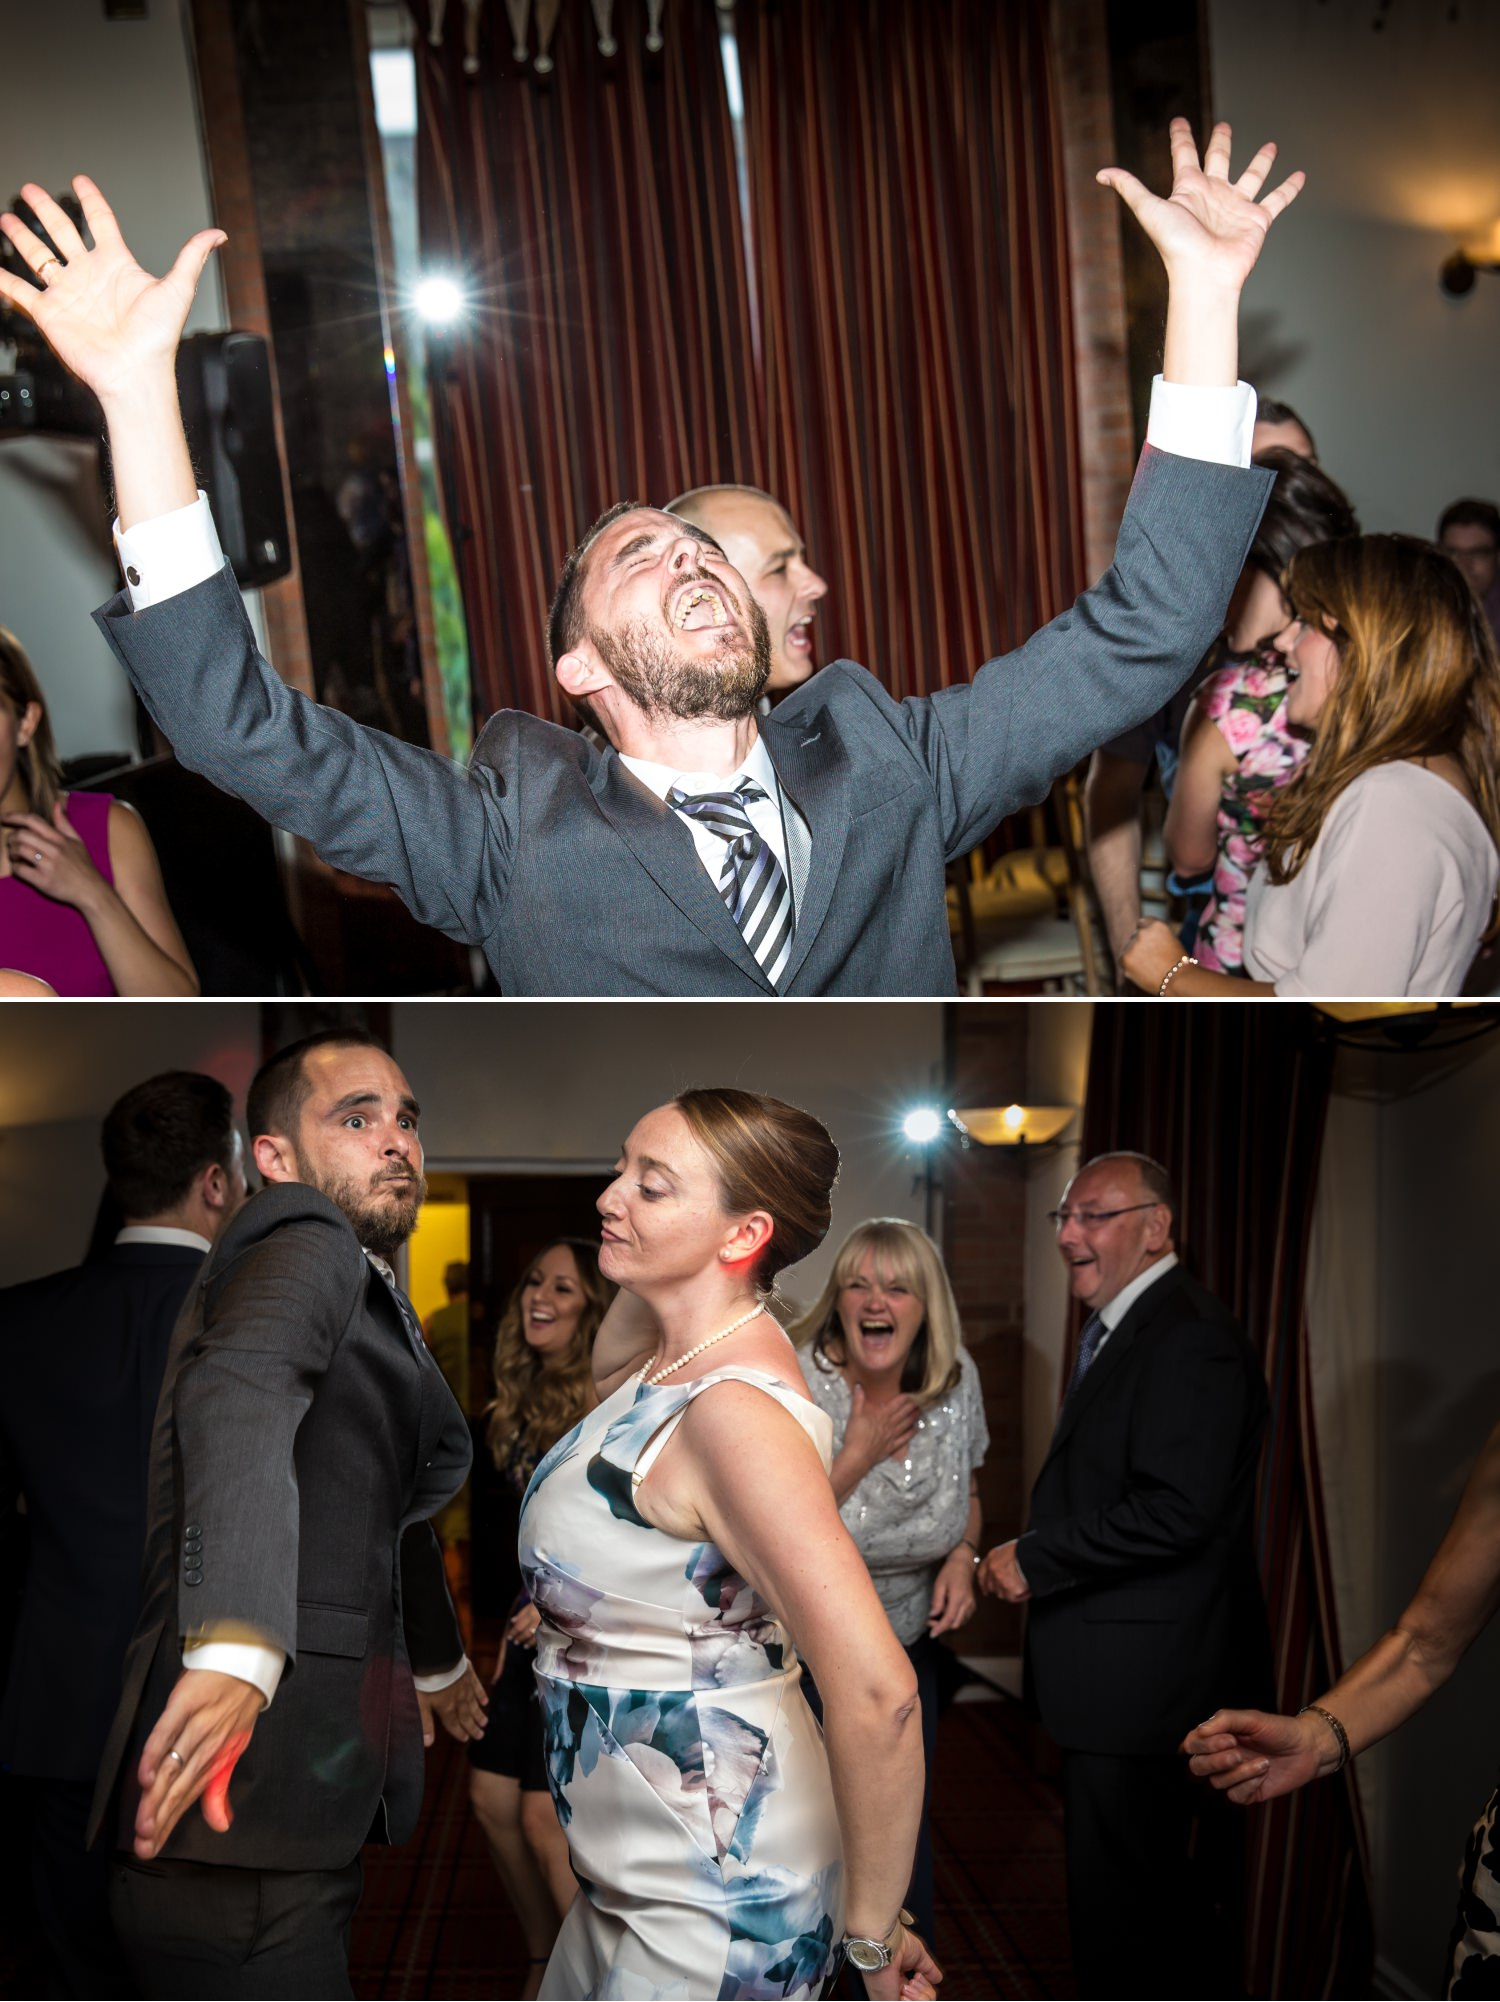 Guests Dancing Wedding Photograph at Carden Park